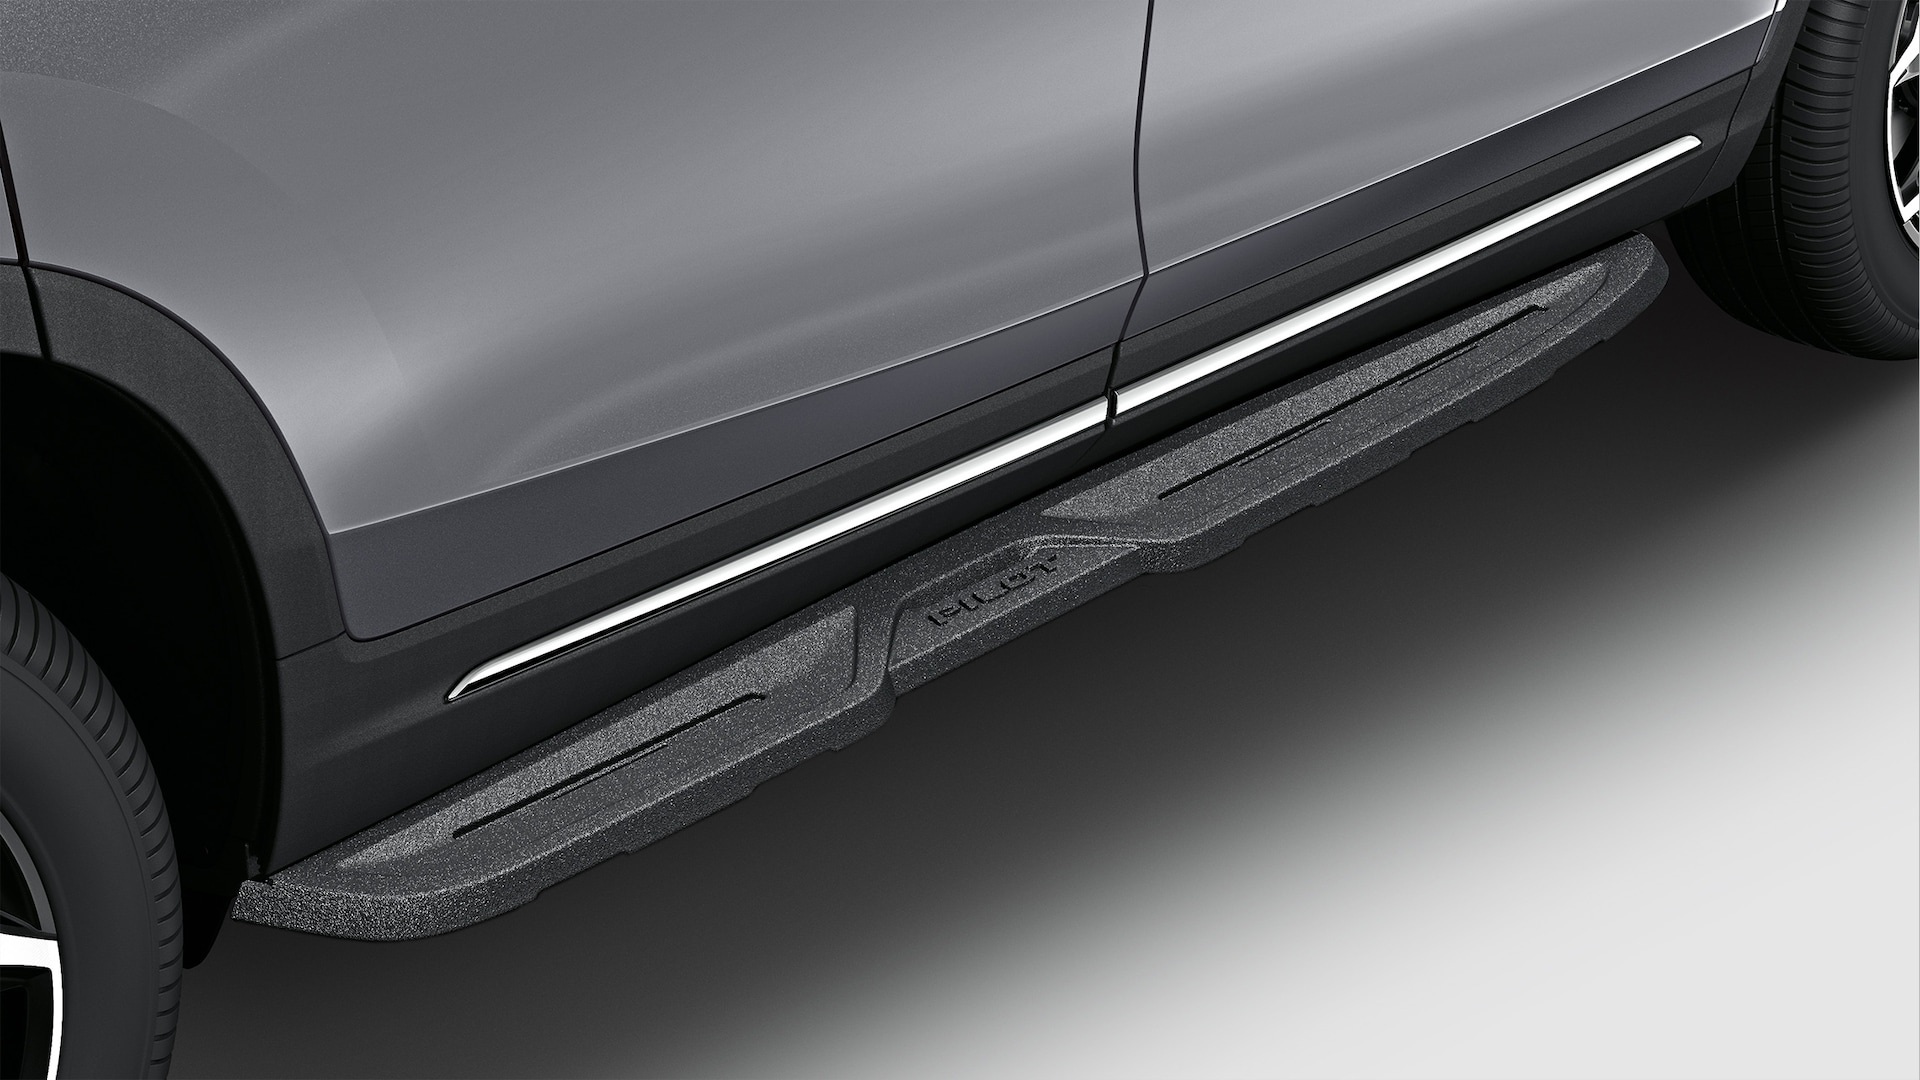 Die-Cast Running Board detail on 2020 Honda Pilot.